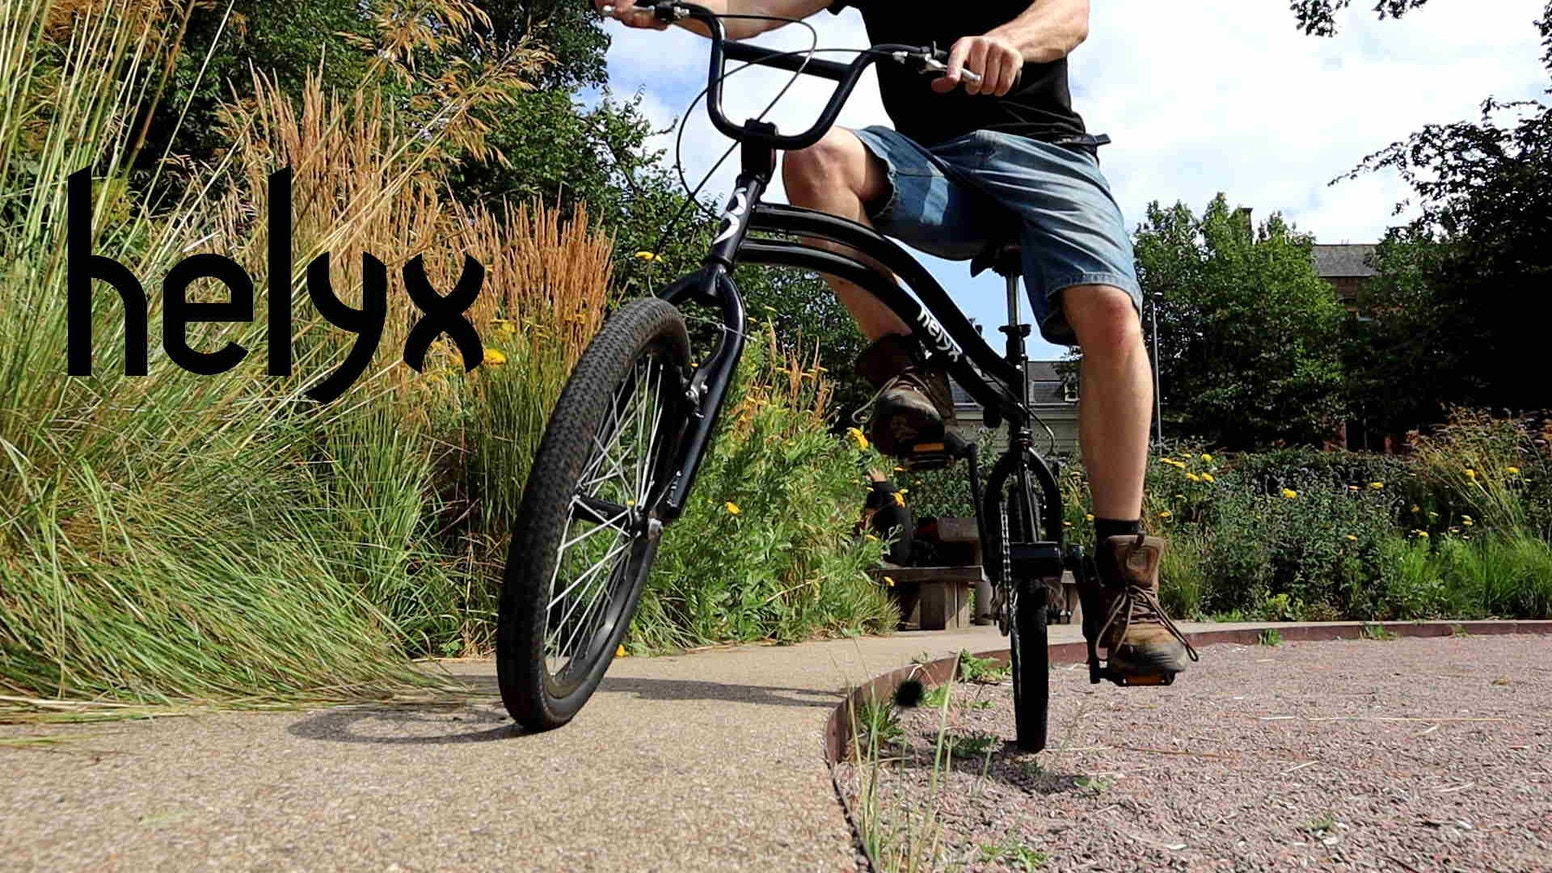 Helyx Bike - Add a new dimension to your ride